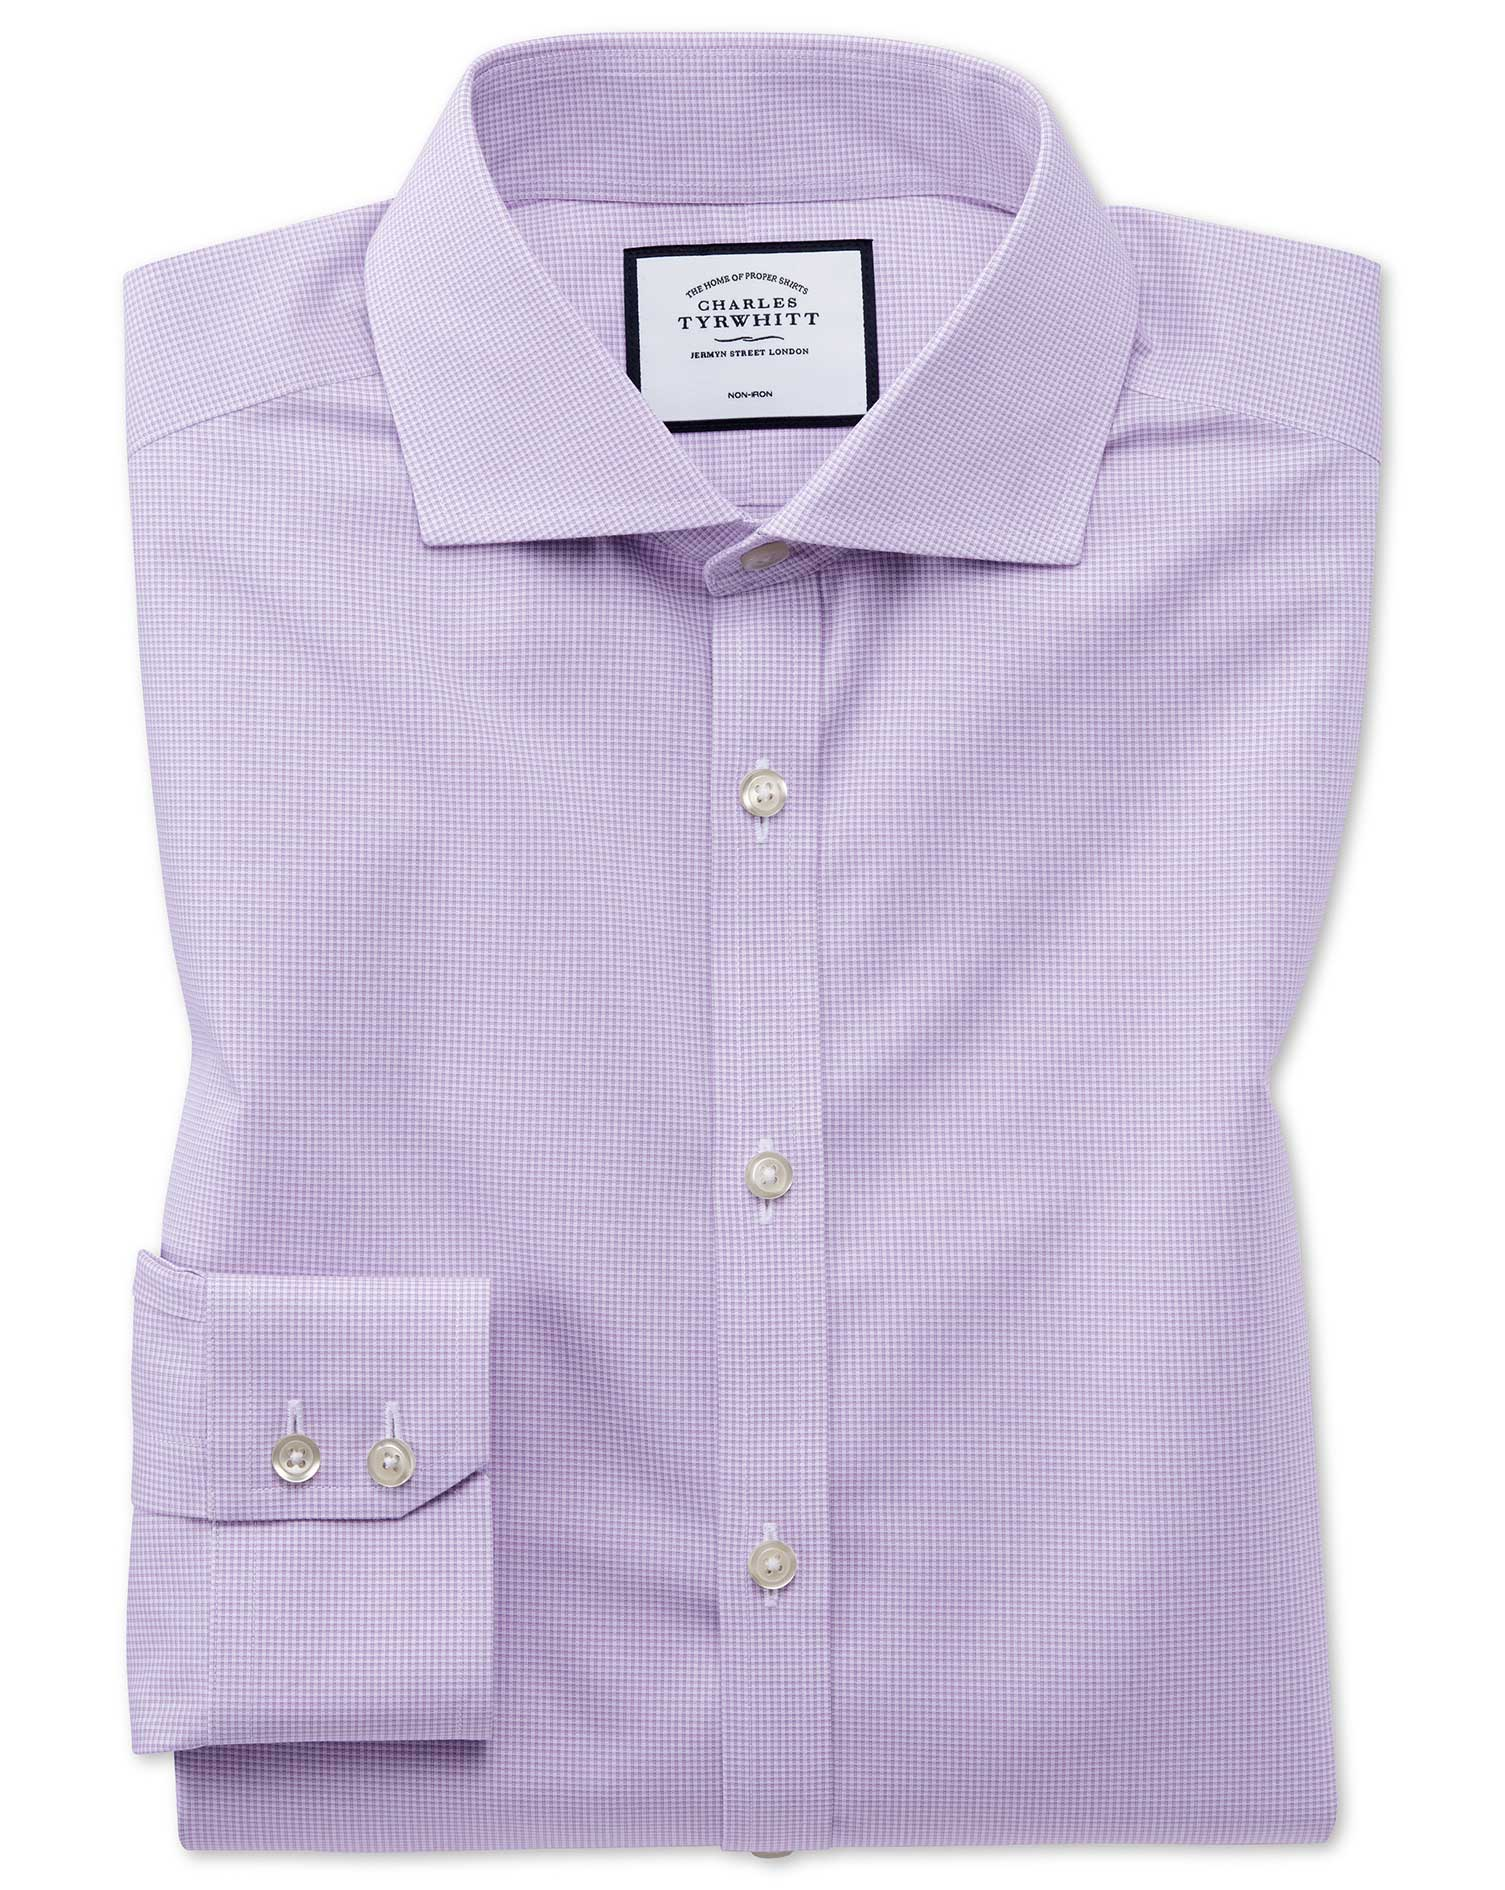 Extra Slim Fit Non-Iron 4-Way Stretch Lilac Check Cotton Formal Shirt Single Cuff Size 16/32 by Char